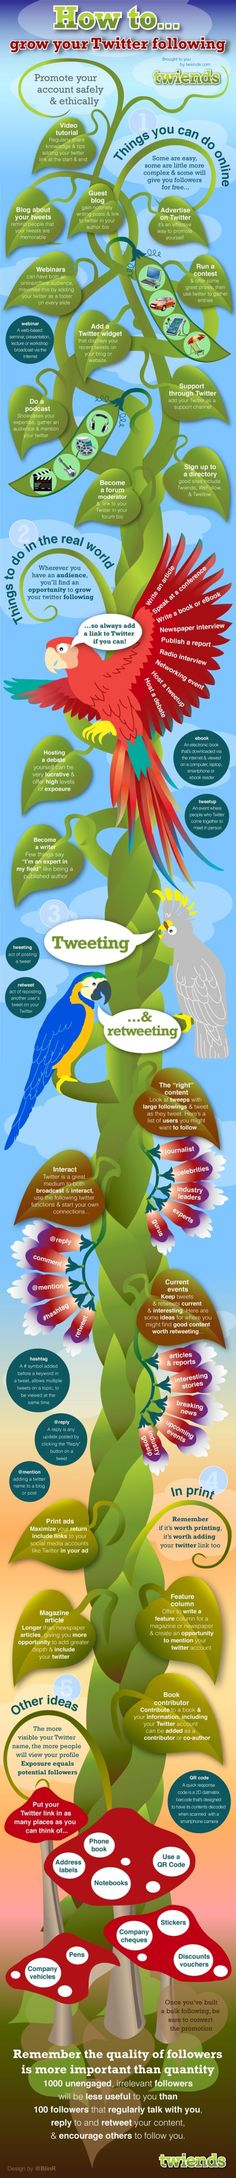 How to grow your #Twitter #following